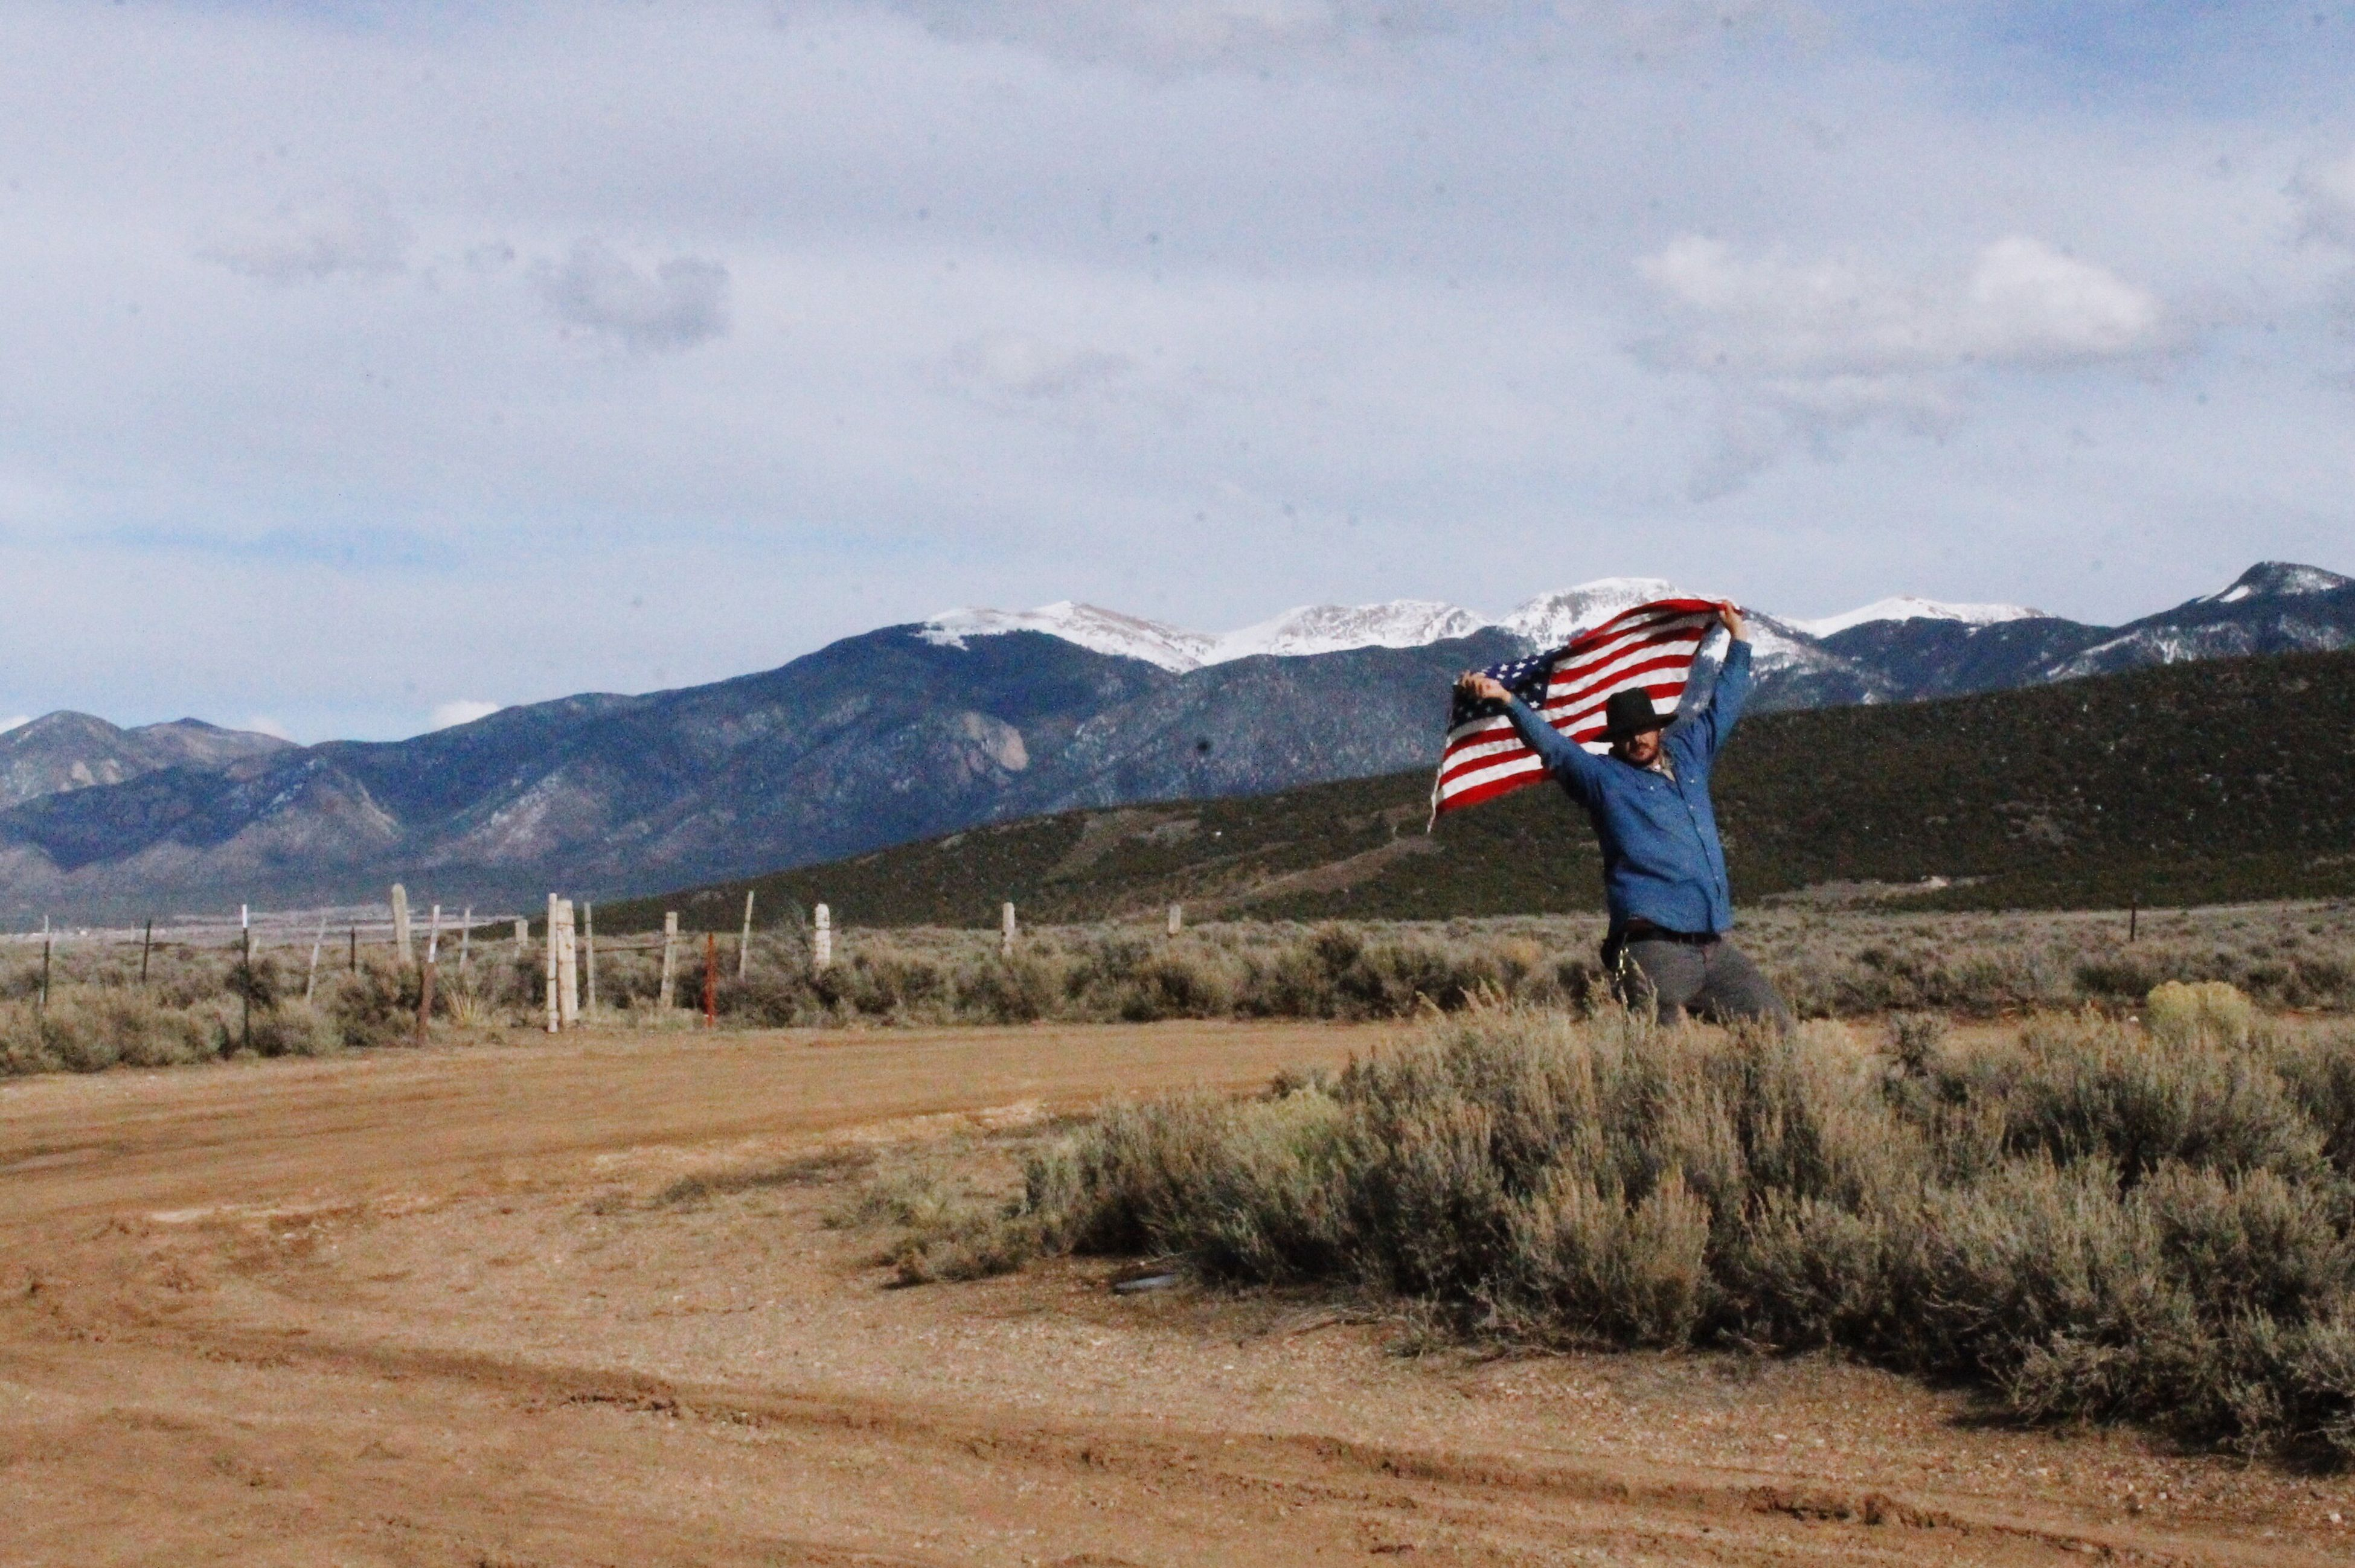 flag, mountain, patriotism, one person, full length, outdoors, sky, people, landscape, nature, wilderness area, adult, young adult, day, adults only